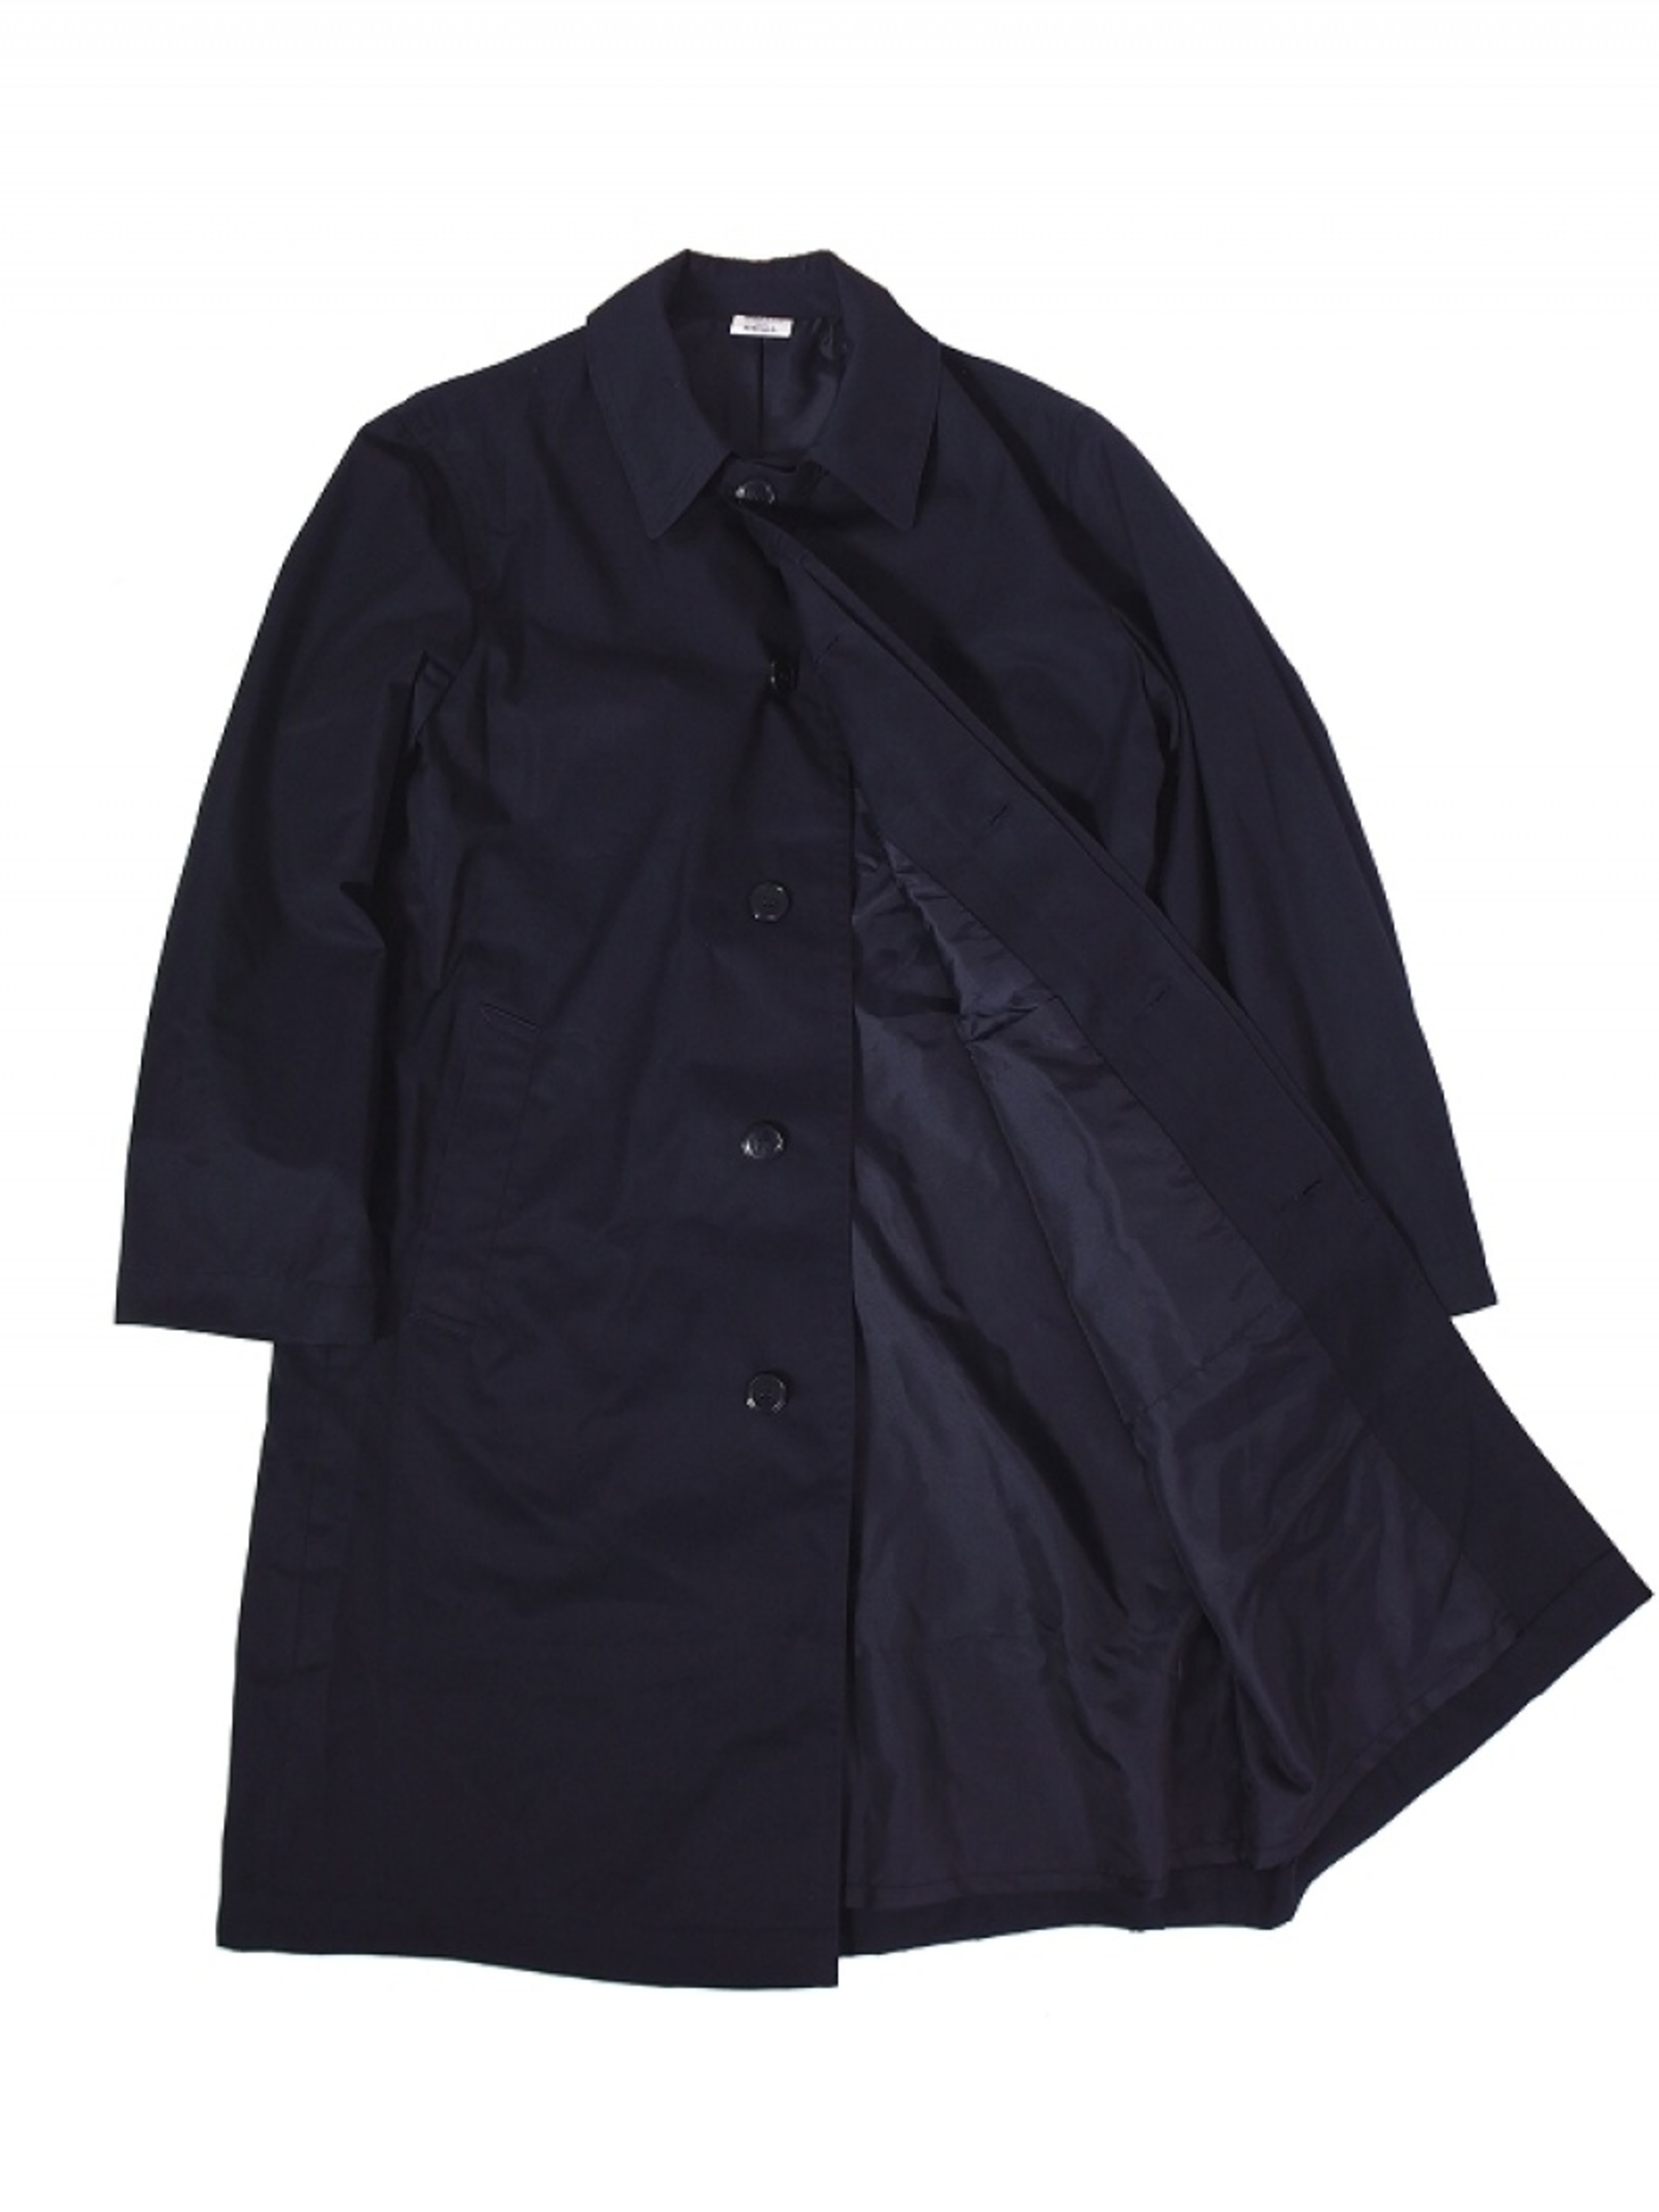 FRENCH ARMY BALMACAAN COAT